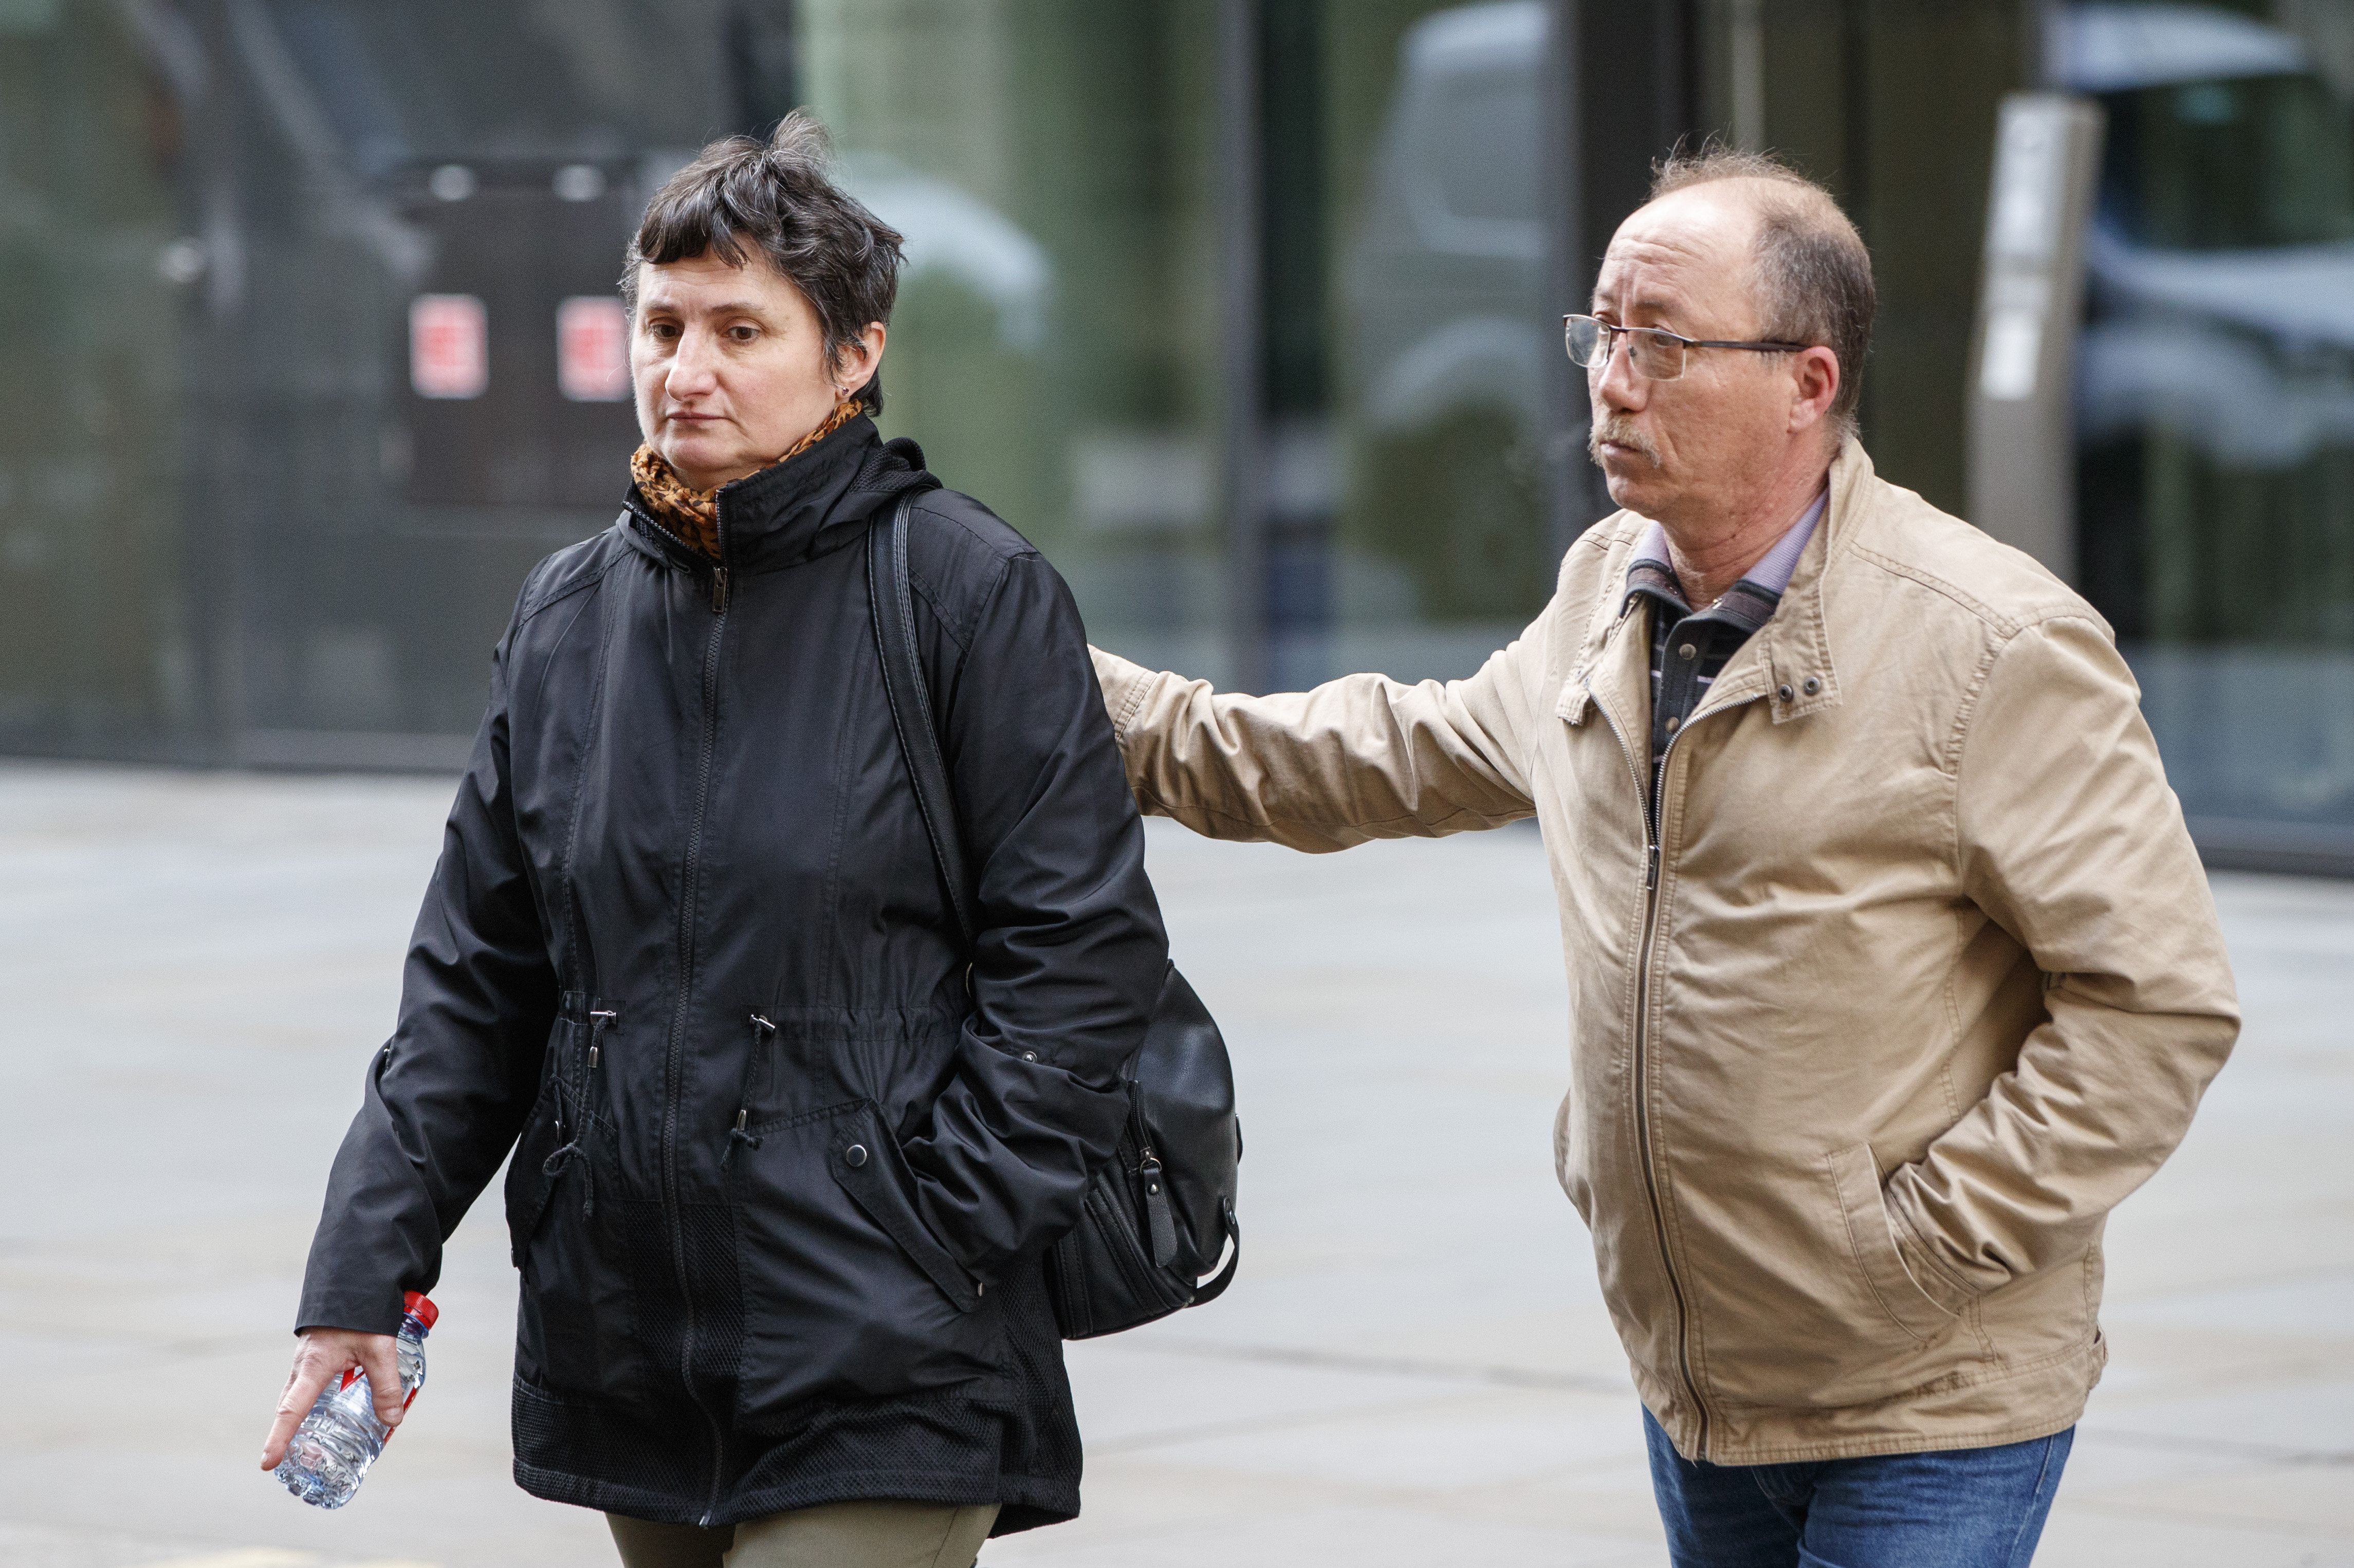 Sophie Lionnet's mother Catherine and her grandfather Stephane Devallone outside the court on Monday April 16